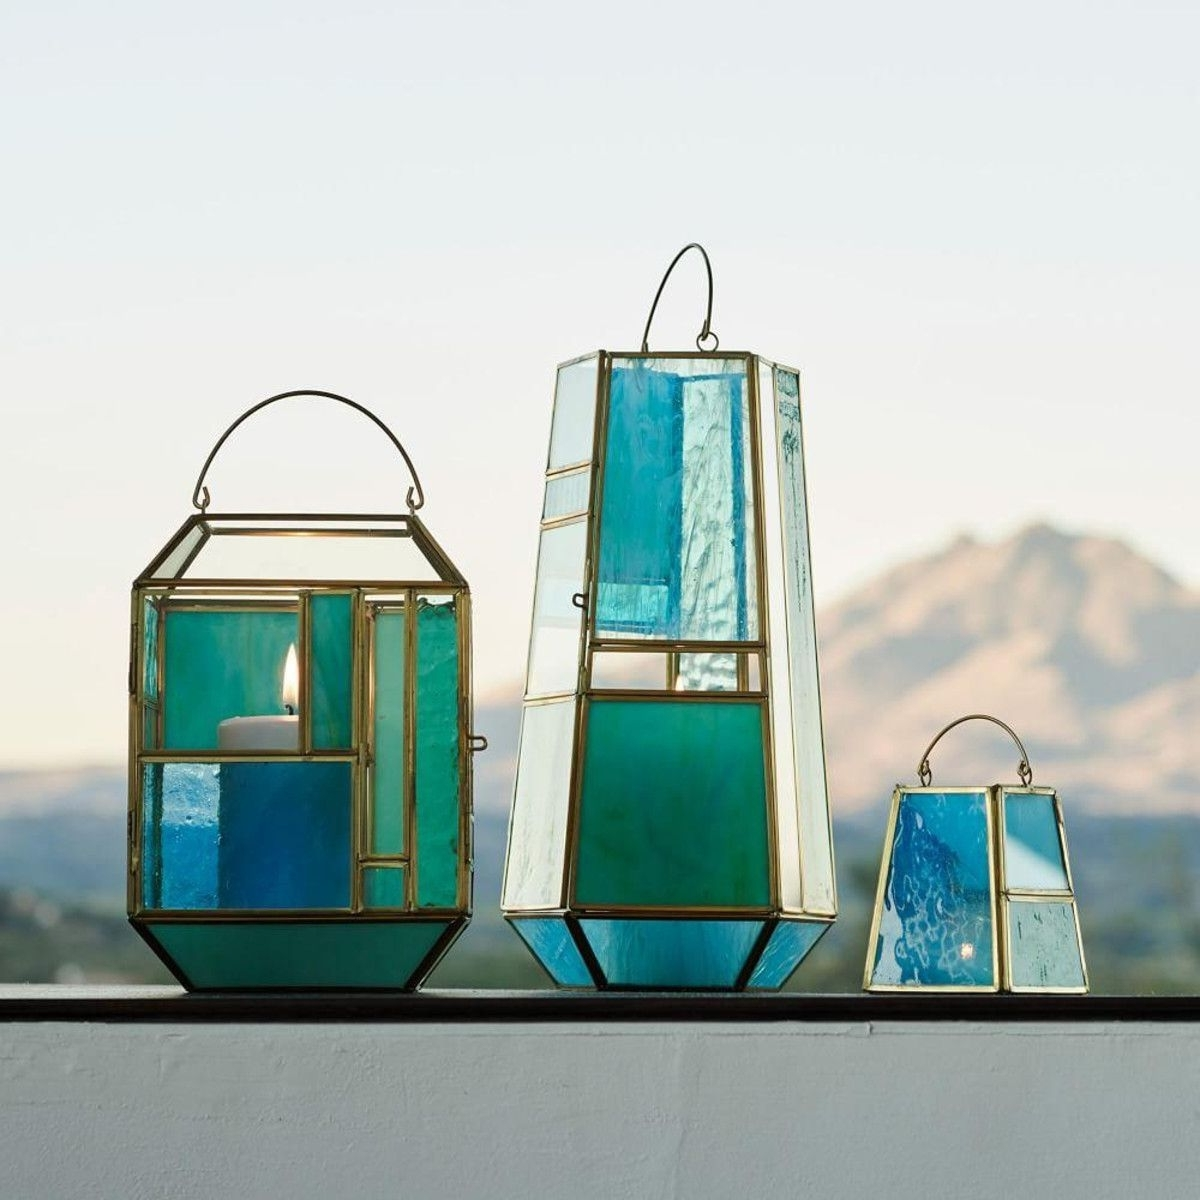 Popular Hang These Stained Glass Inspired Lanterns Inside Or Outside, To In Blue Outdoor Lanterns (Gallery 9 of 20)